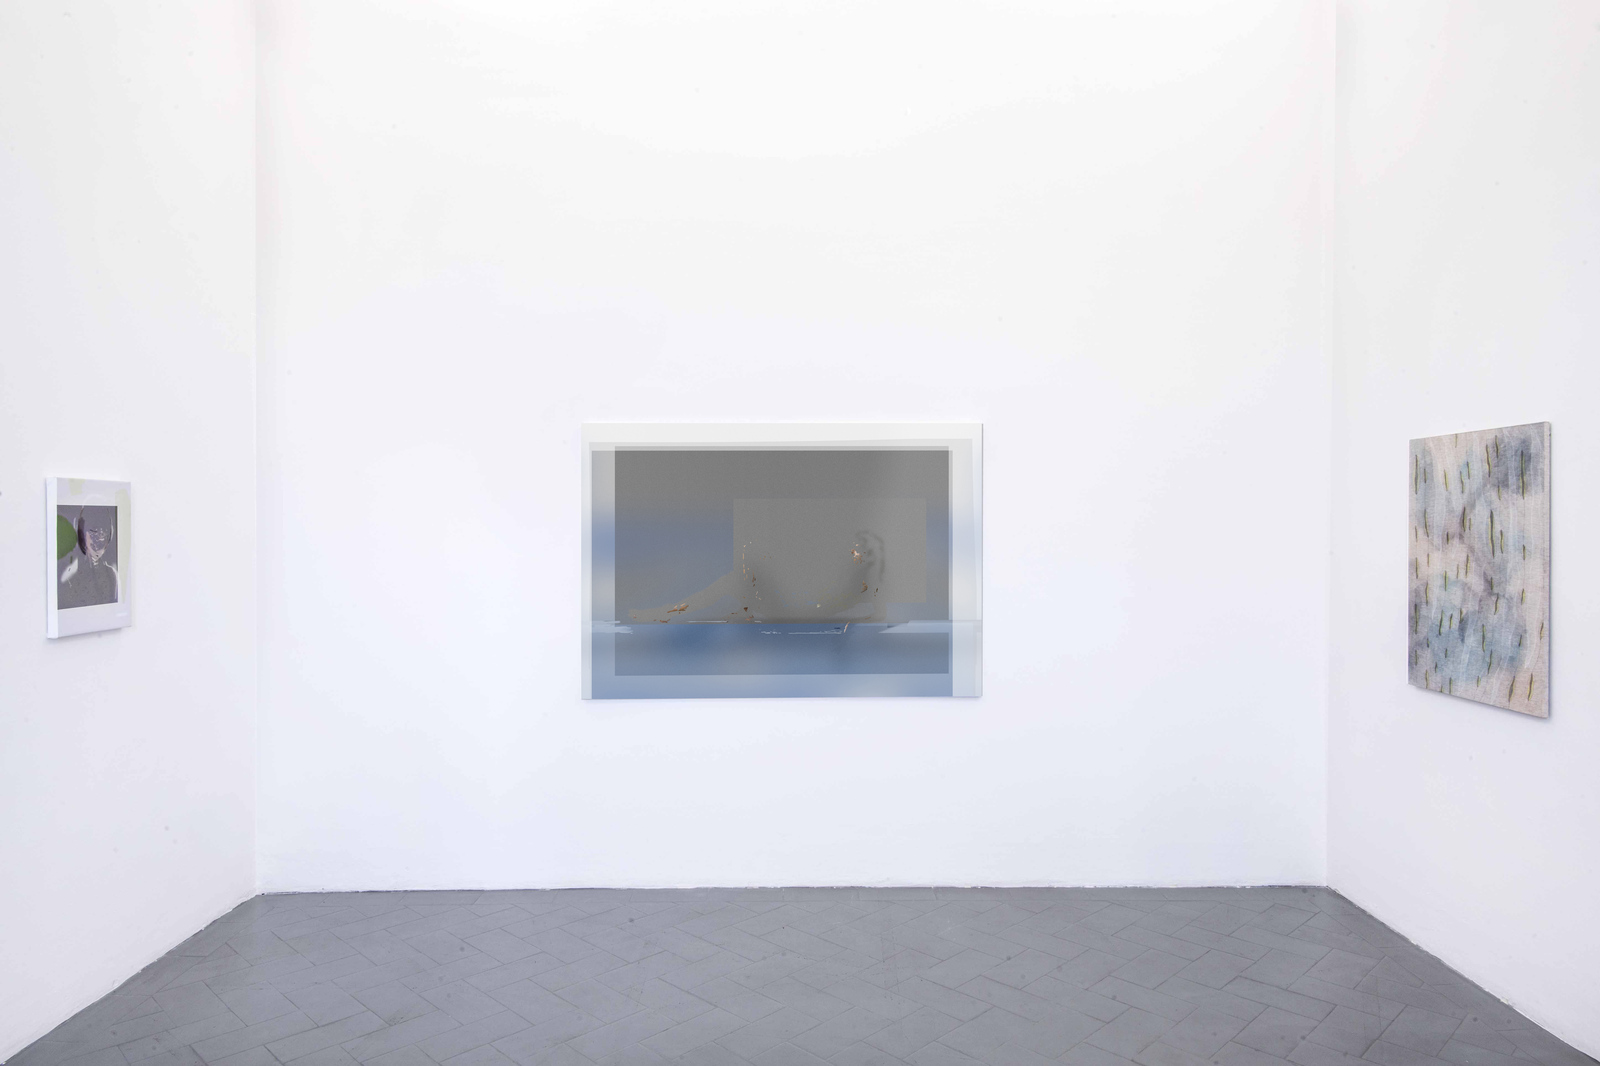 10.Installation View. Joshua Citarella, Hanna Hur. Courtesy of Eduardo secci Contemporary